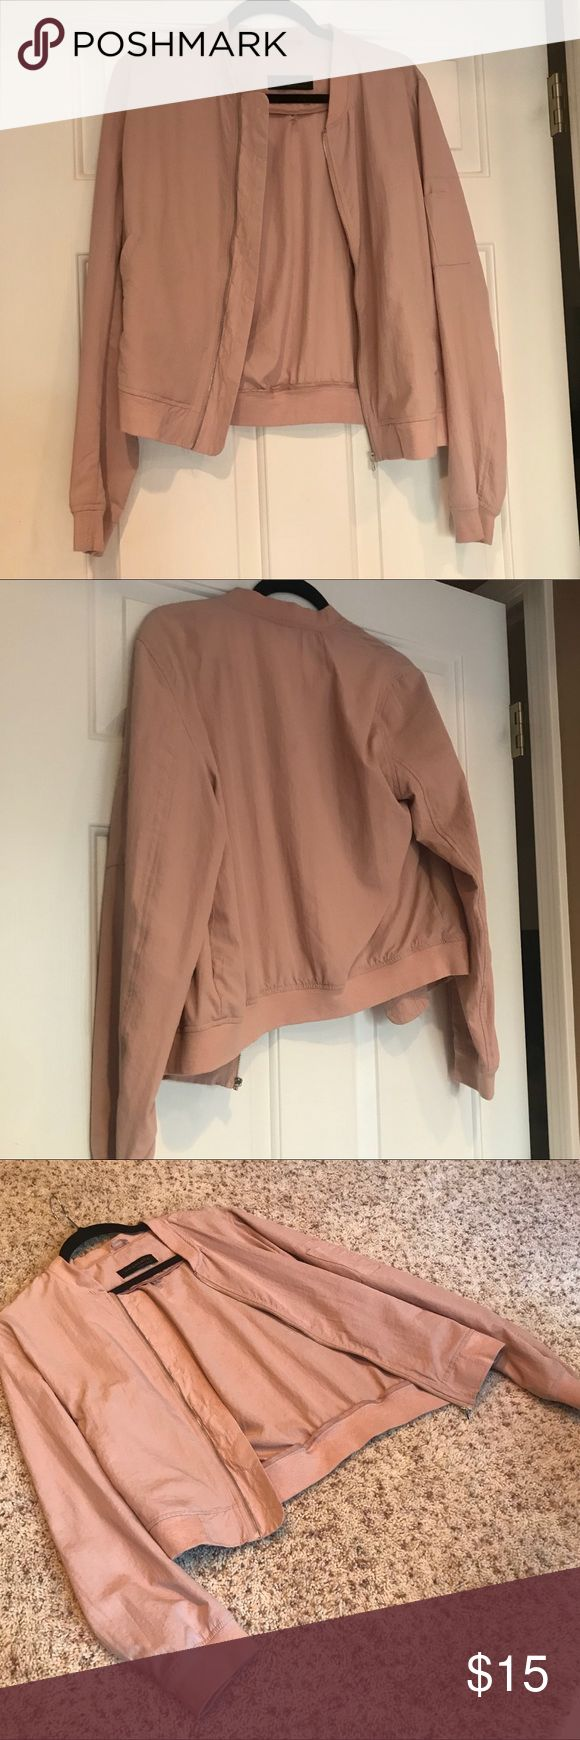 Light Pink Bomber Jacket Light Pink Bomber Jacket. Only worn once! Great condition💕 Bagatelle Heritage Jackets & Coats